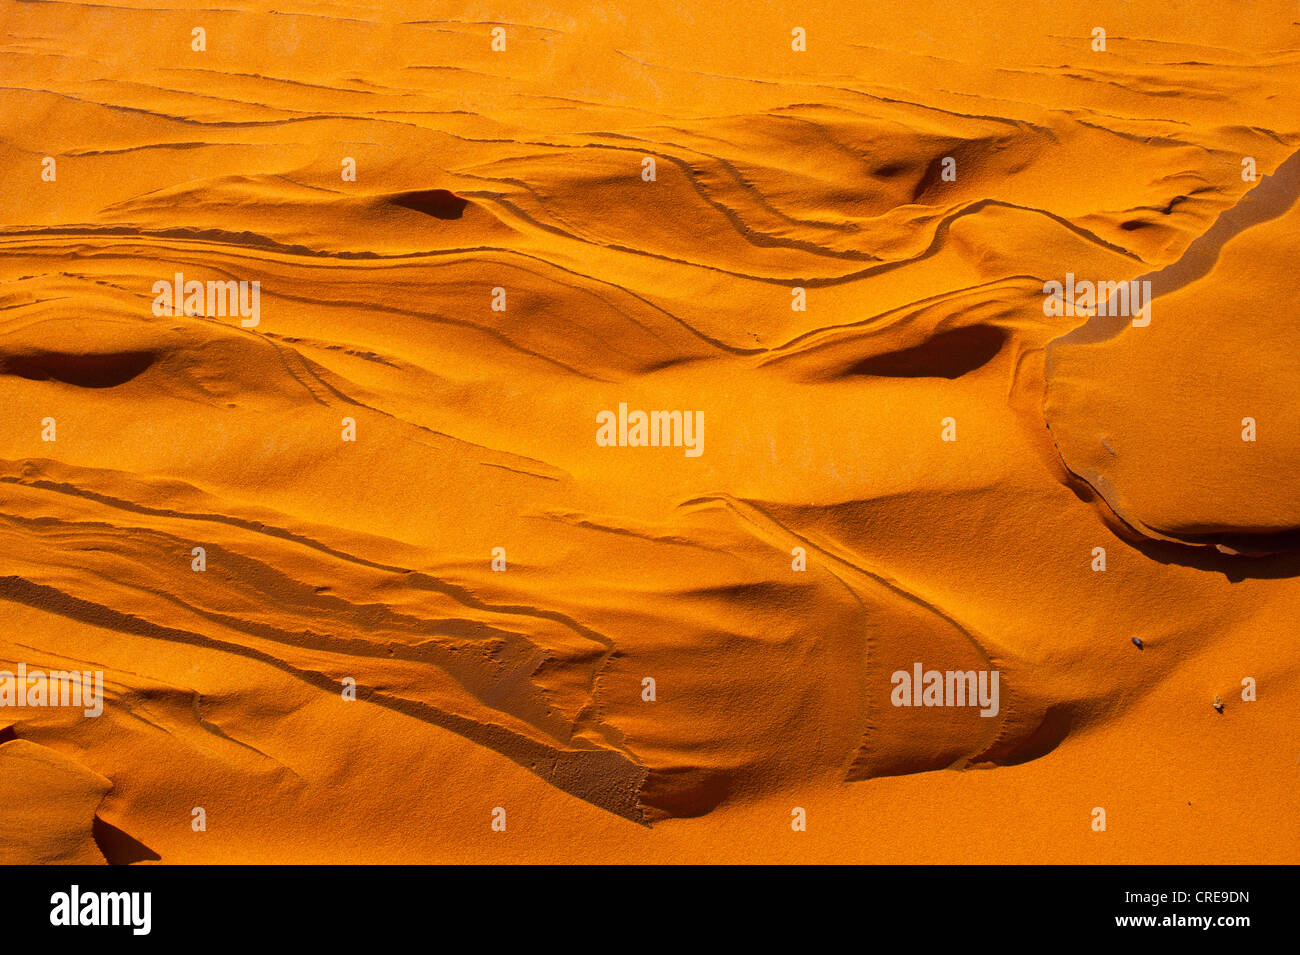 Sand shaped by the wind, after heavy rains, sand dunes of Erg Chebbi, Sahara, Morocco, Africa - Stock Image